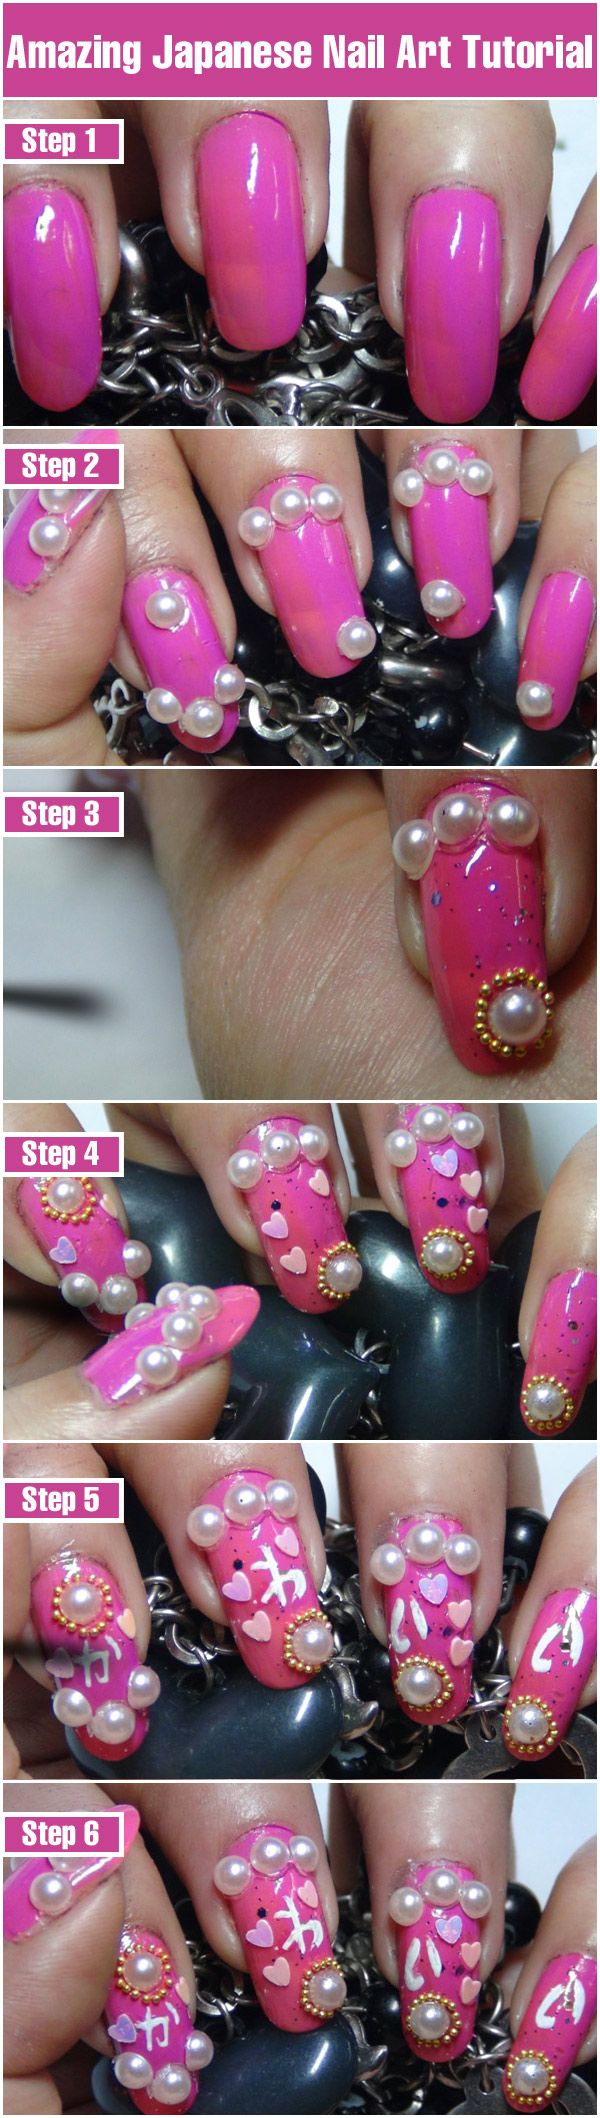 Amazing Japanese Nail Art Tutorial With Detailed Steps & Pictures ...